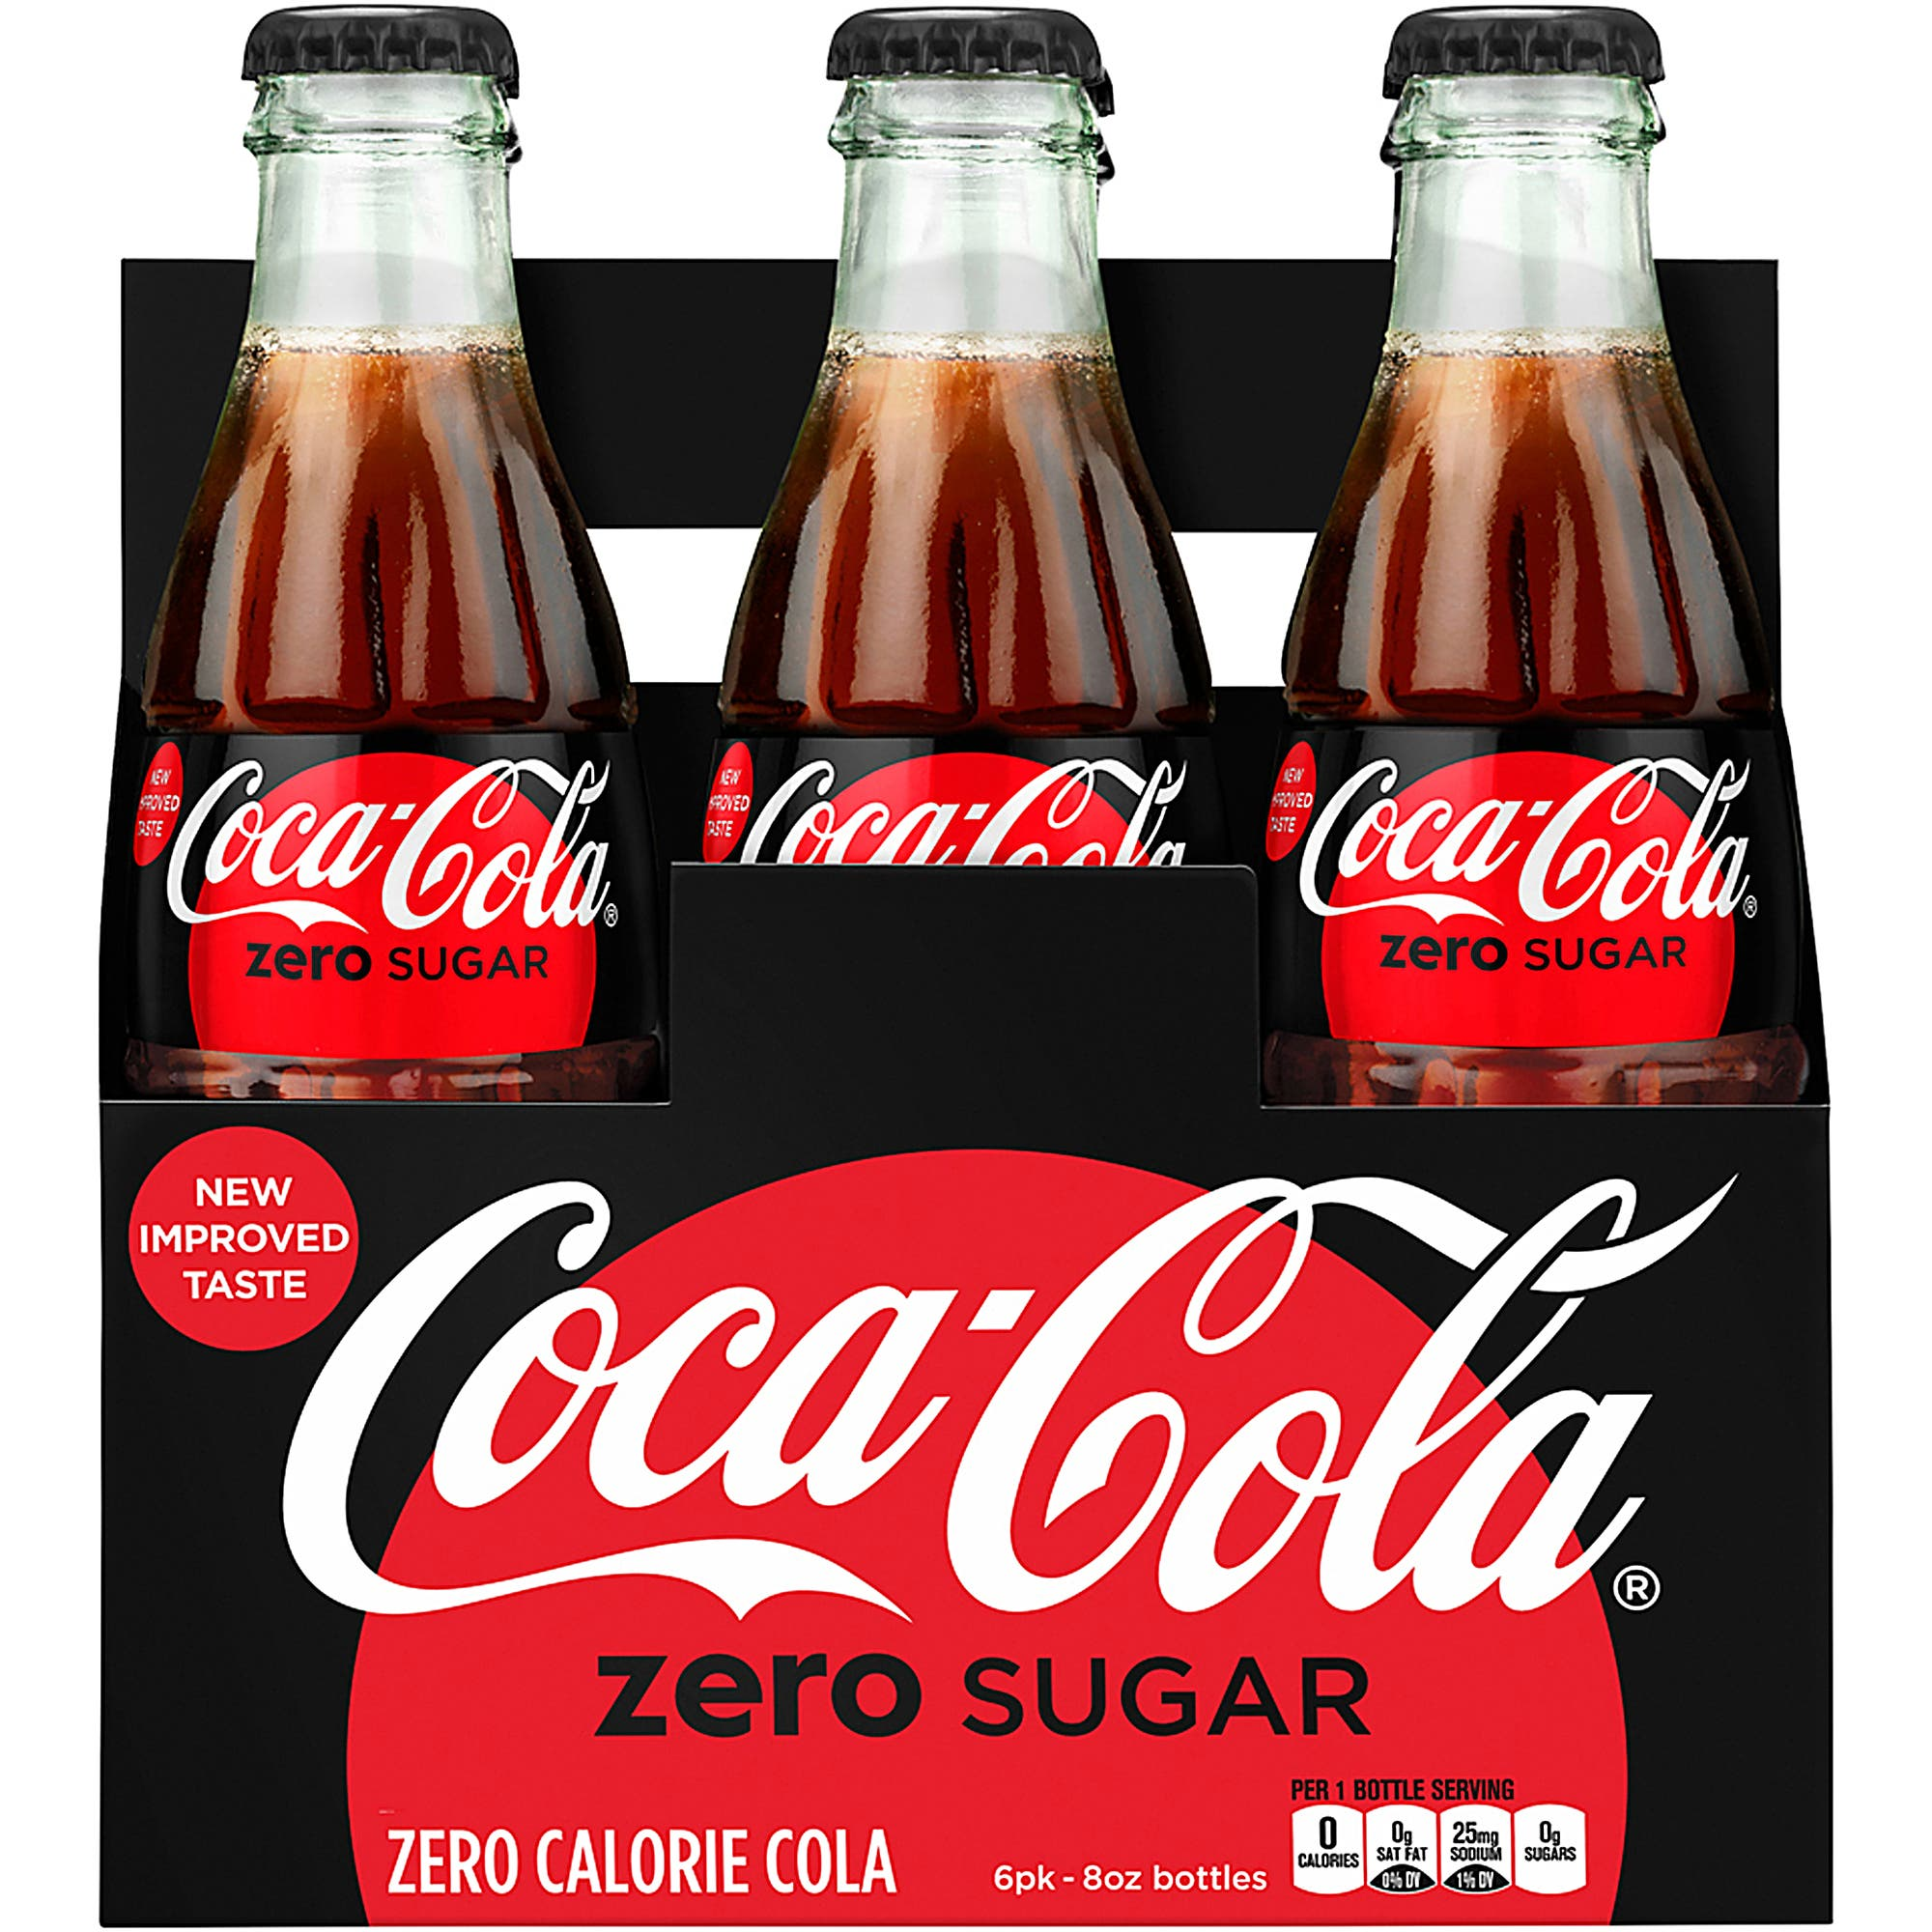 This photo provided by Coca-Cola shows a six-pack of bottled Coca-Cola Zero Sugar. 9AP)